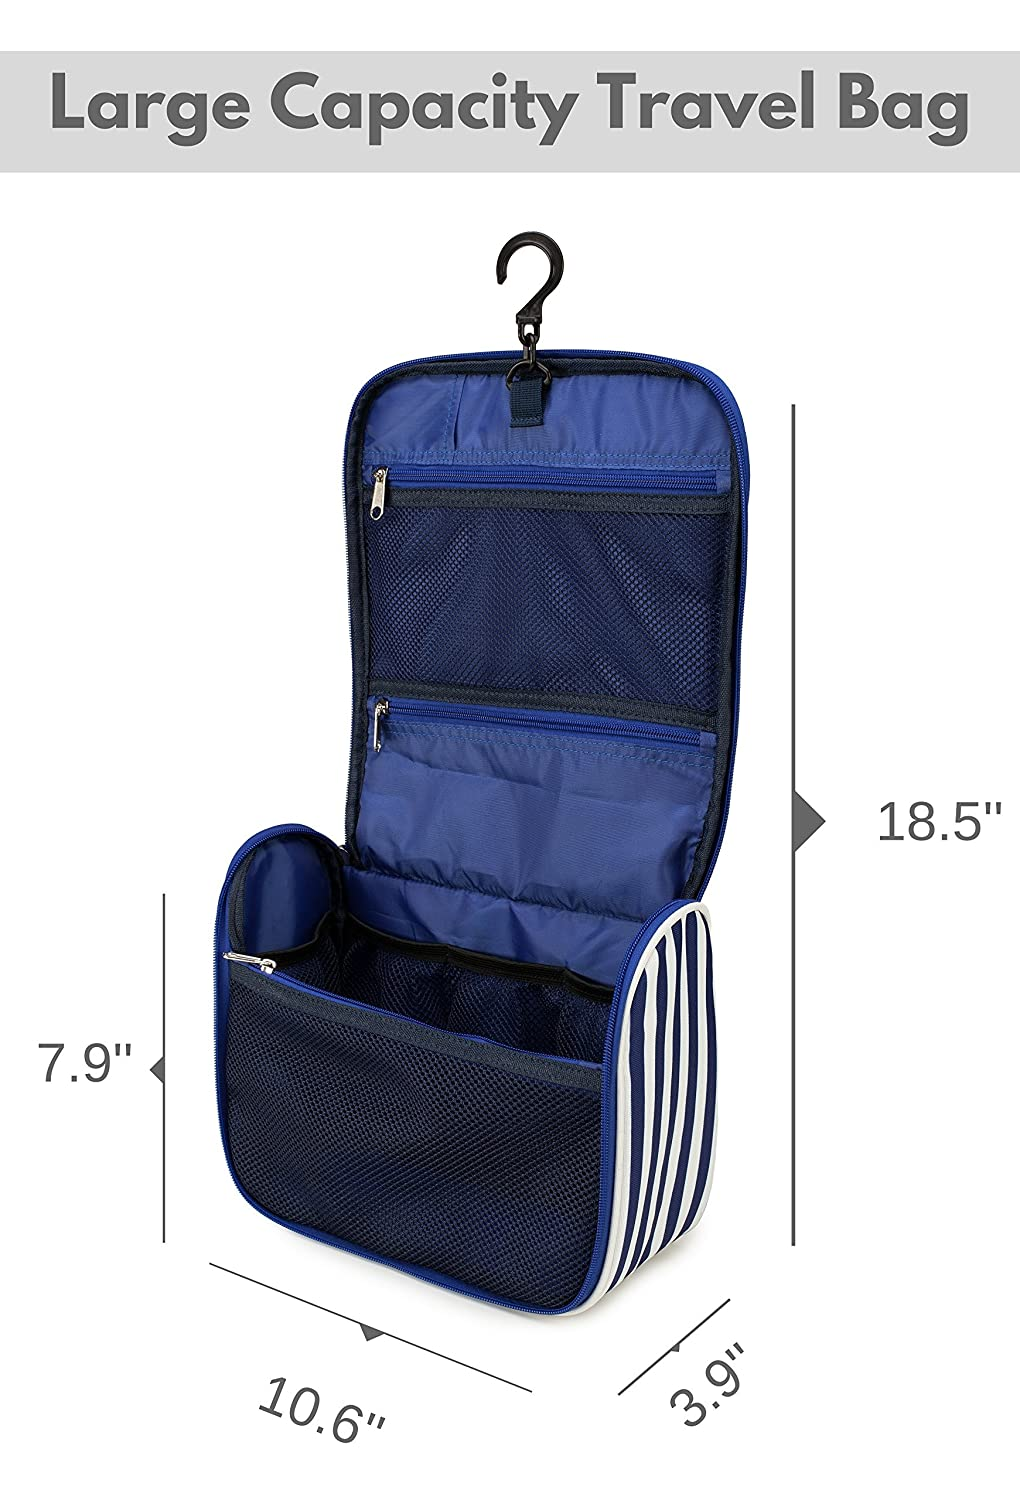 2fb41043a3f1 Amazon.com  7Senses Hanging Toiletry Bag - Large Capacity Travel Bag for  Women and Men - Toiletry Kit